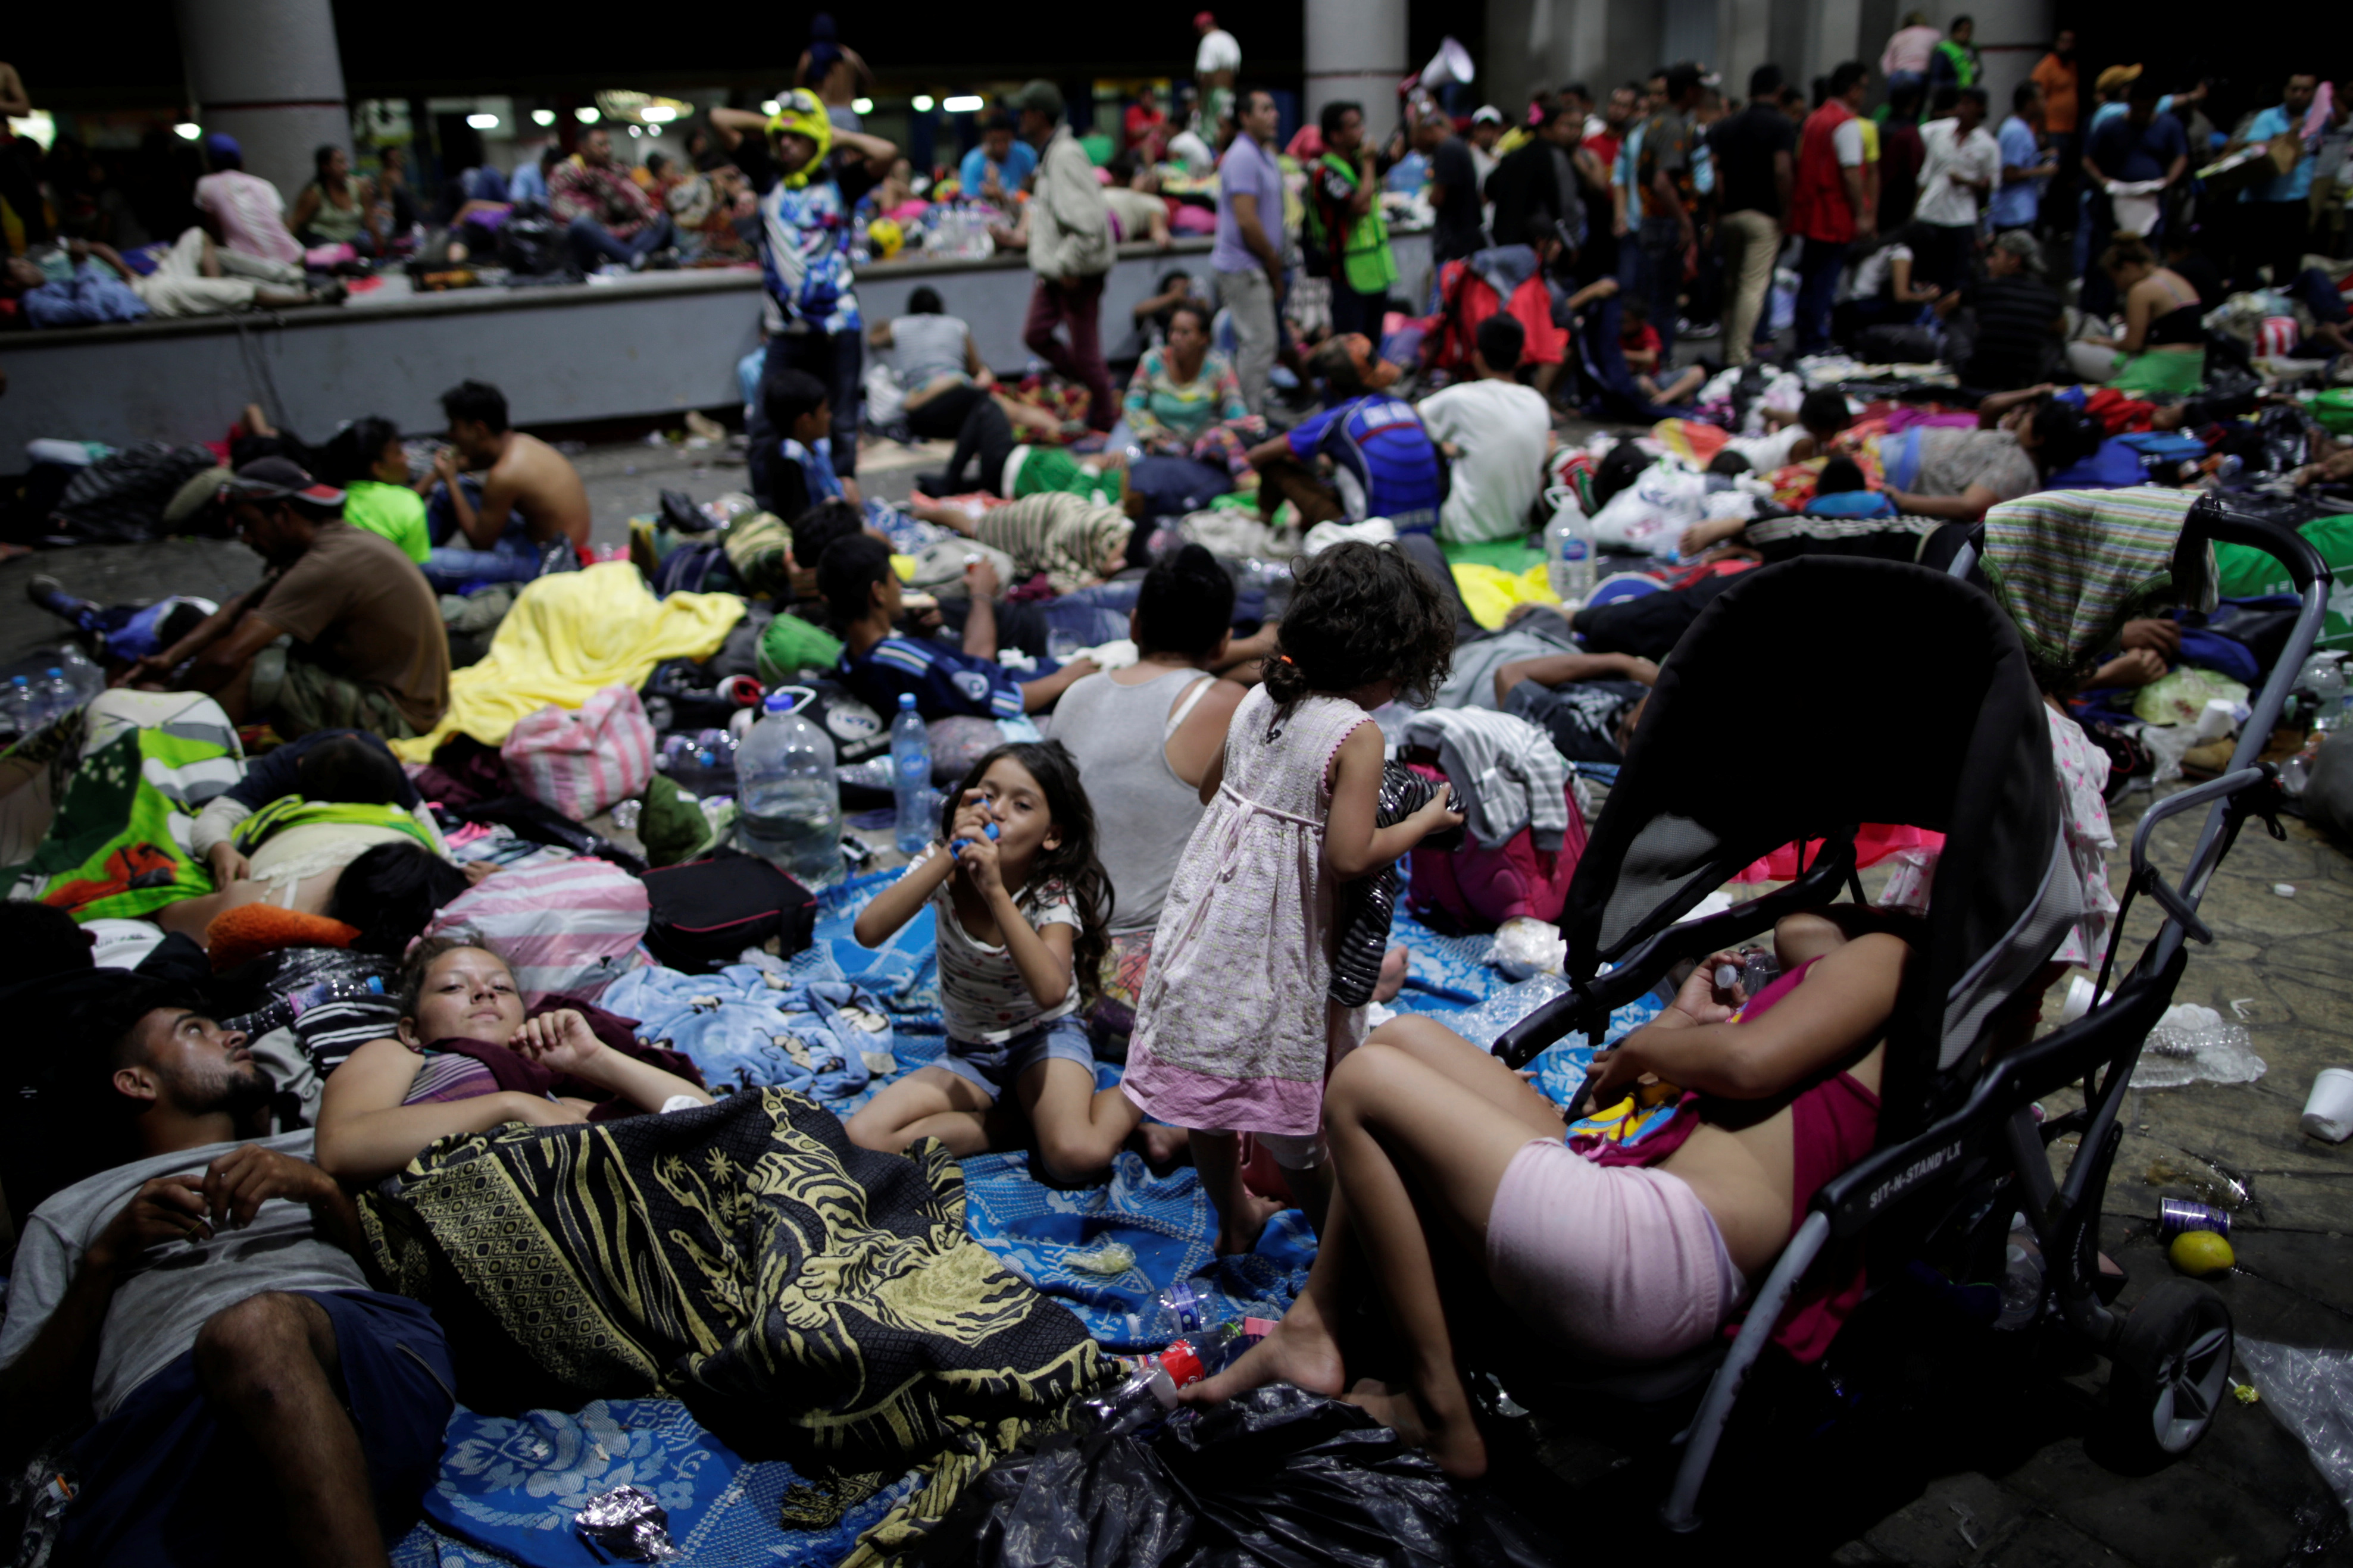 Migrants, part of a caravan of thousands of migrants from Central America en route to the United States, rest along the sidewalks of Tapachula city center, Mexico October 21, 2018.